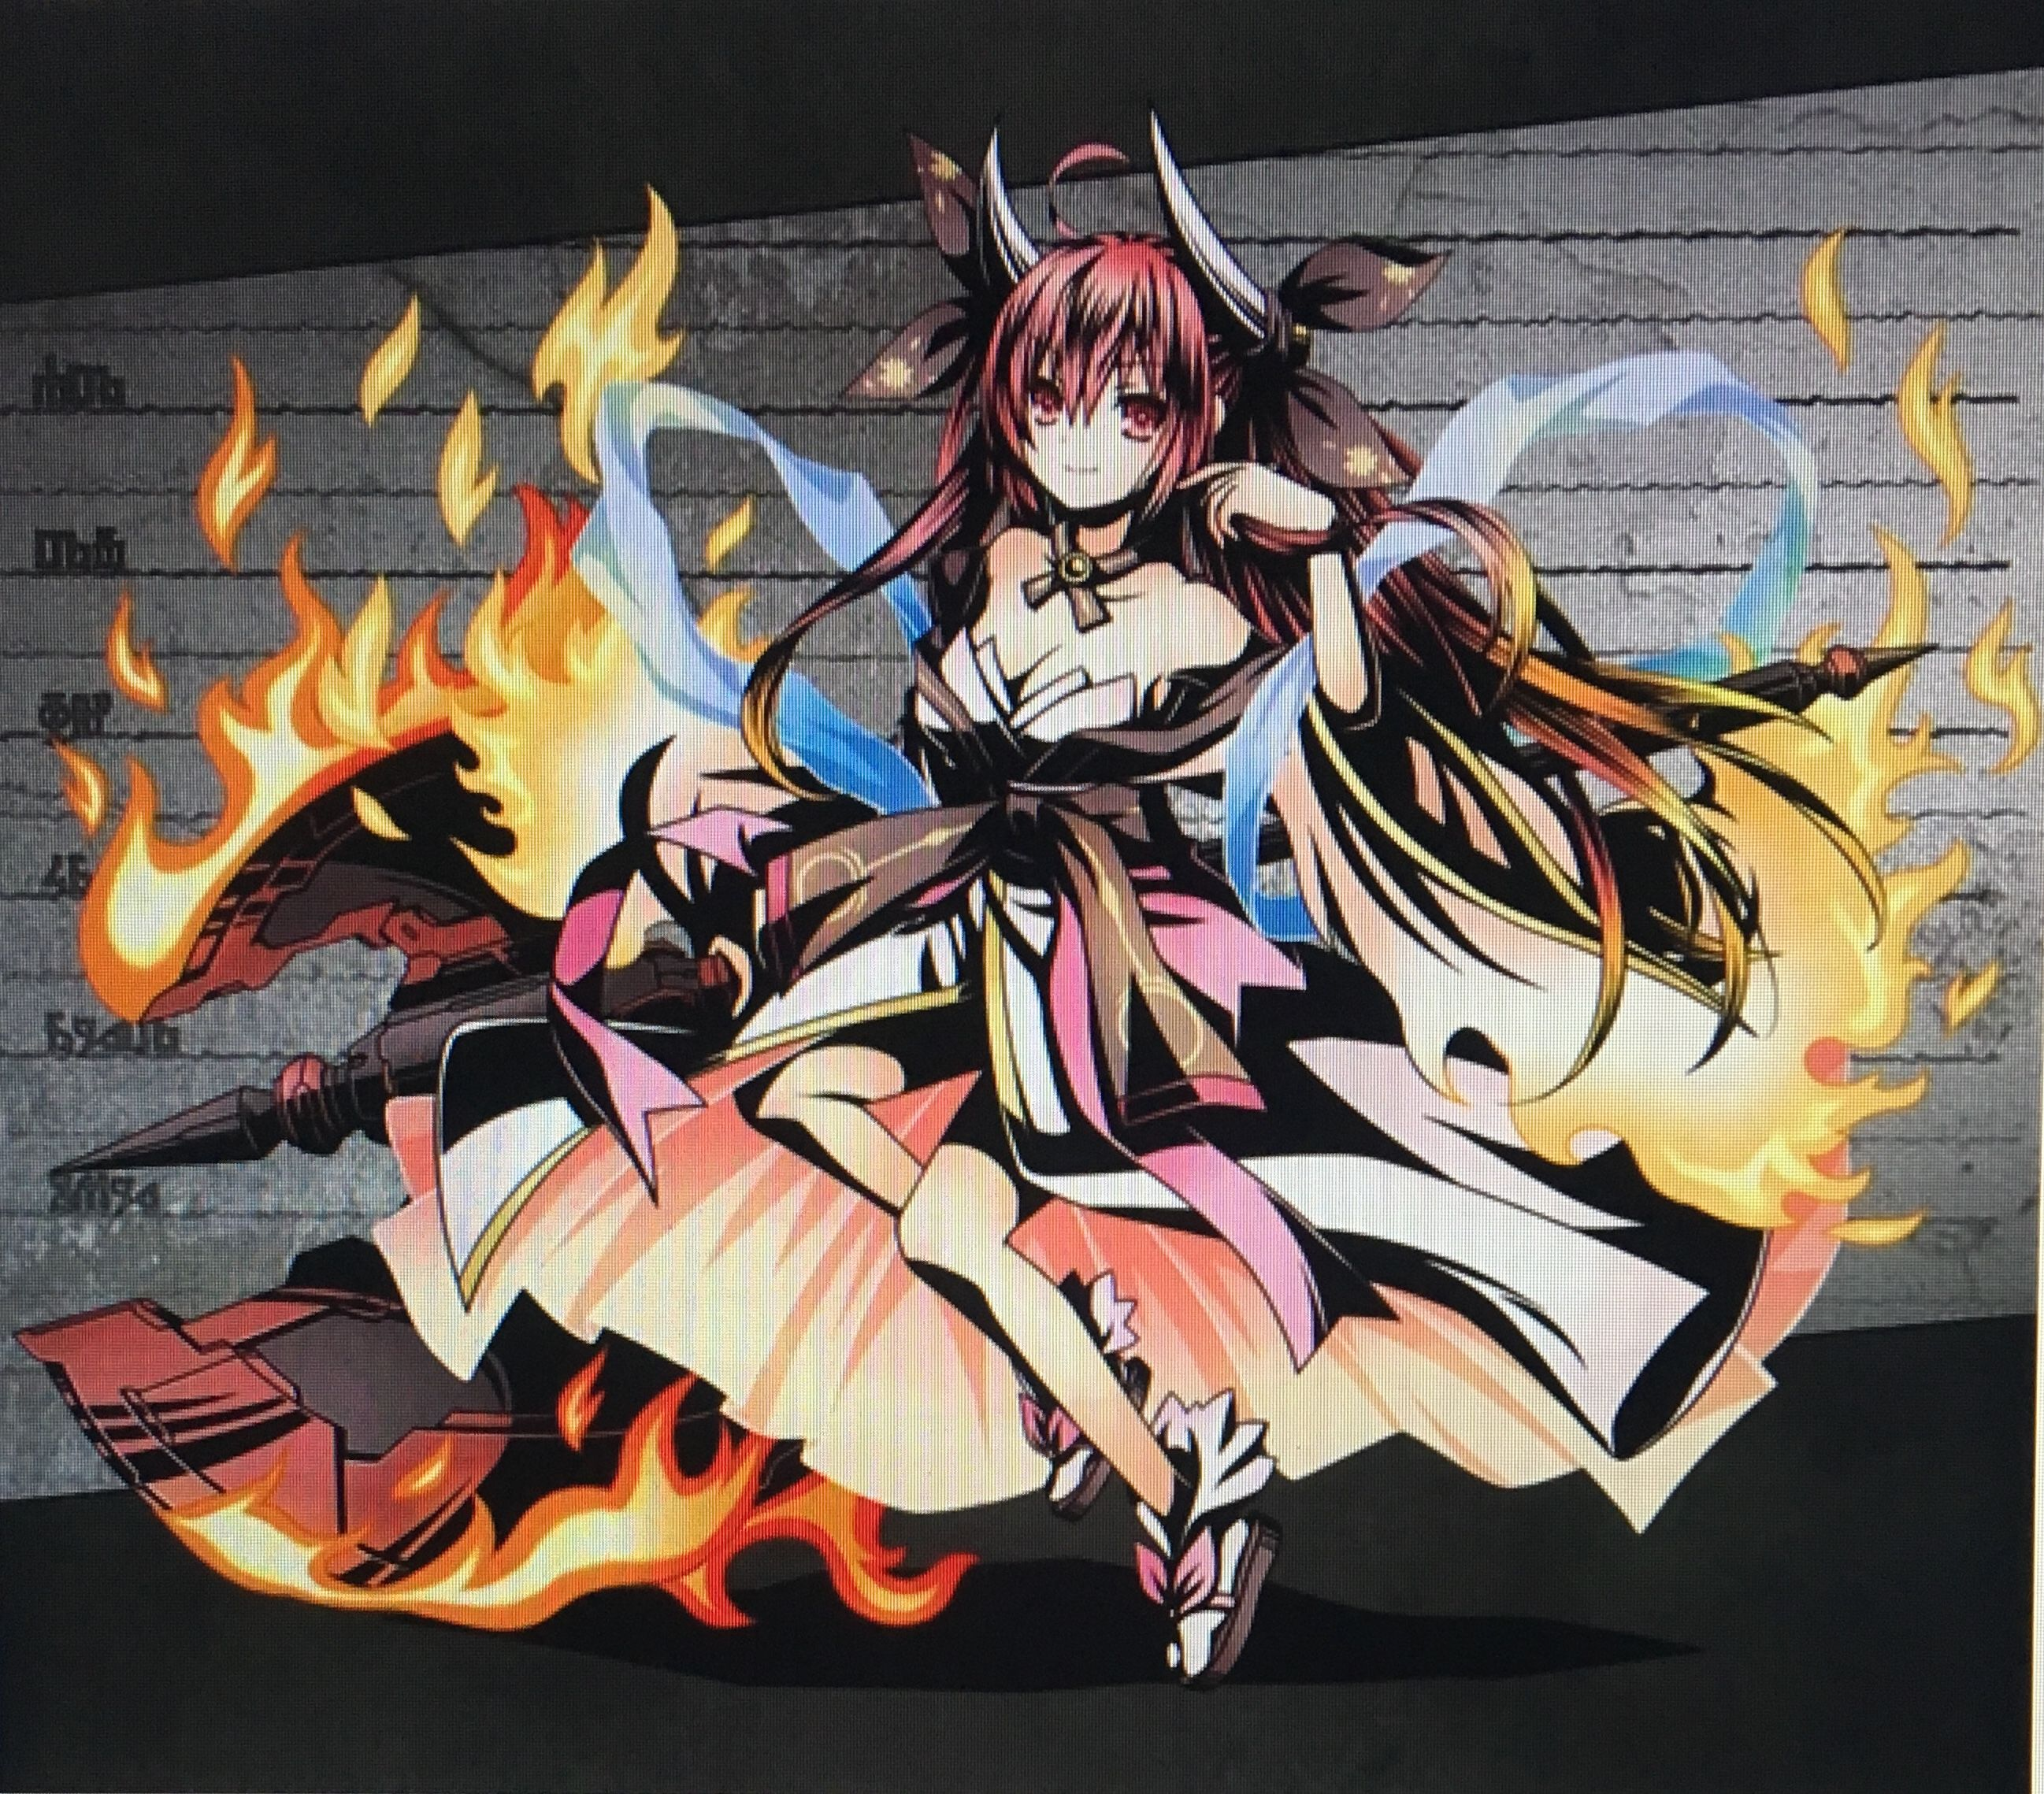 Anime image by JAC Hyde Date a live, Date a live kotori